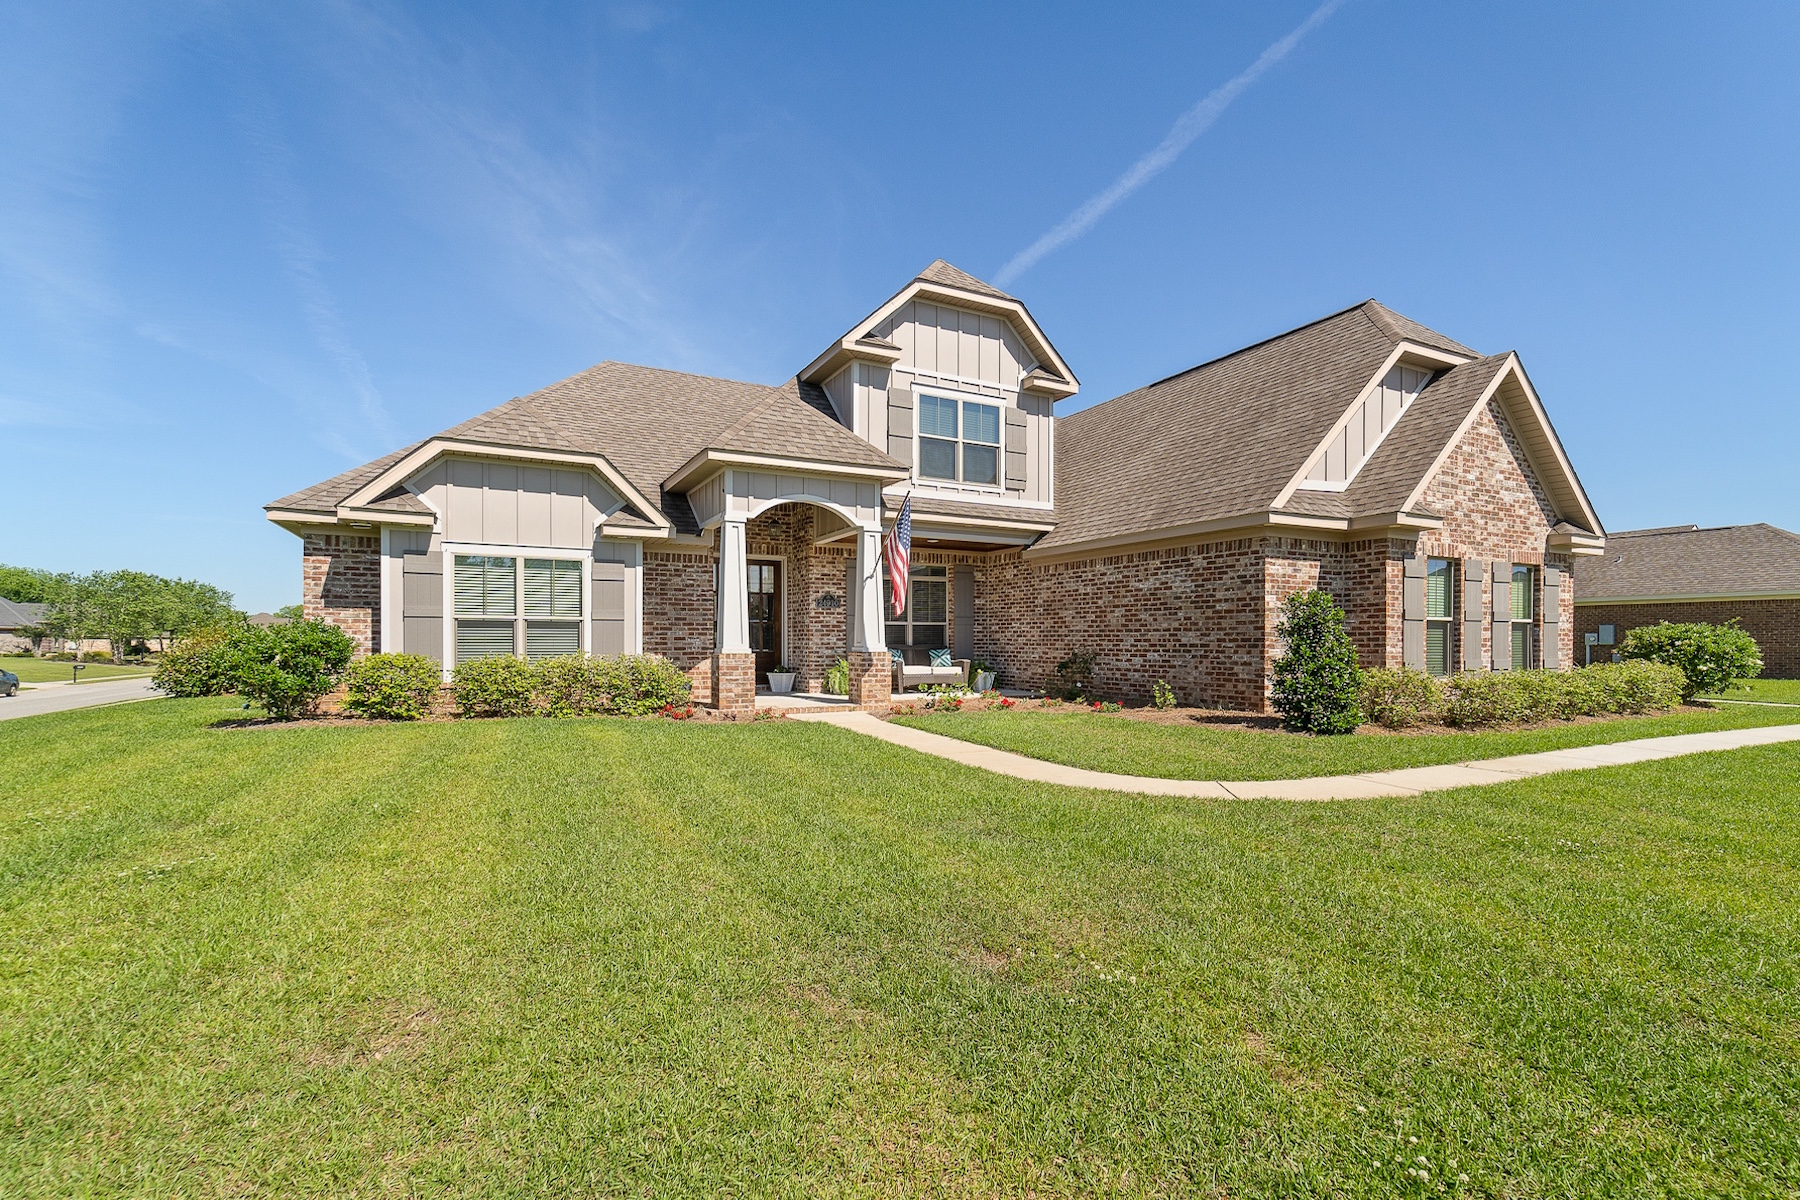 Single Family Home for Active at Waterford 24910 Planters Drive Daphne, Alabama 36526 United States